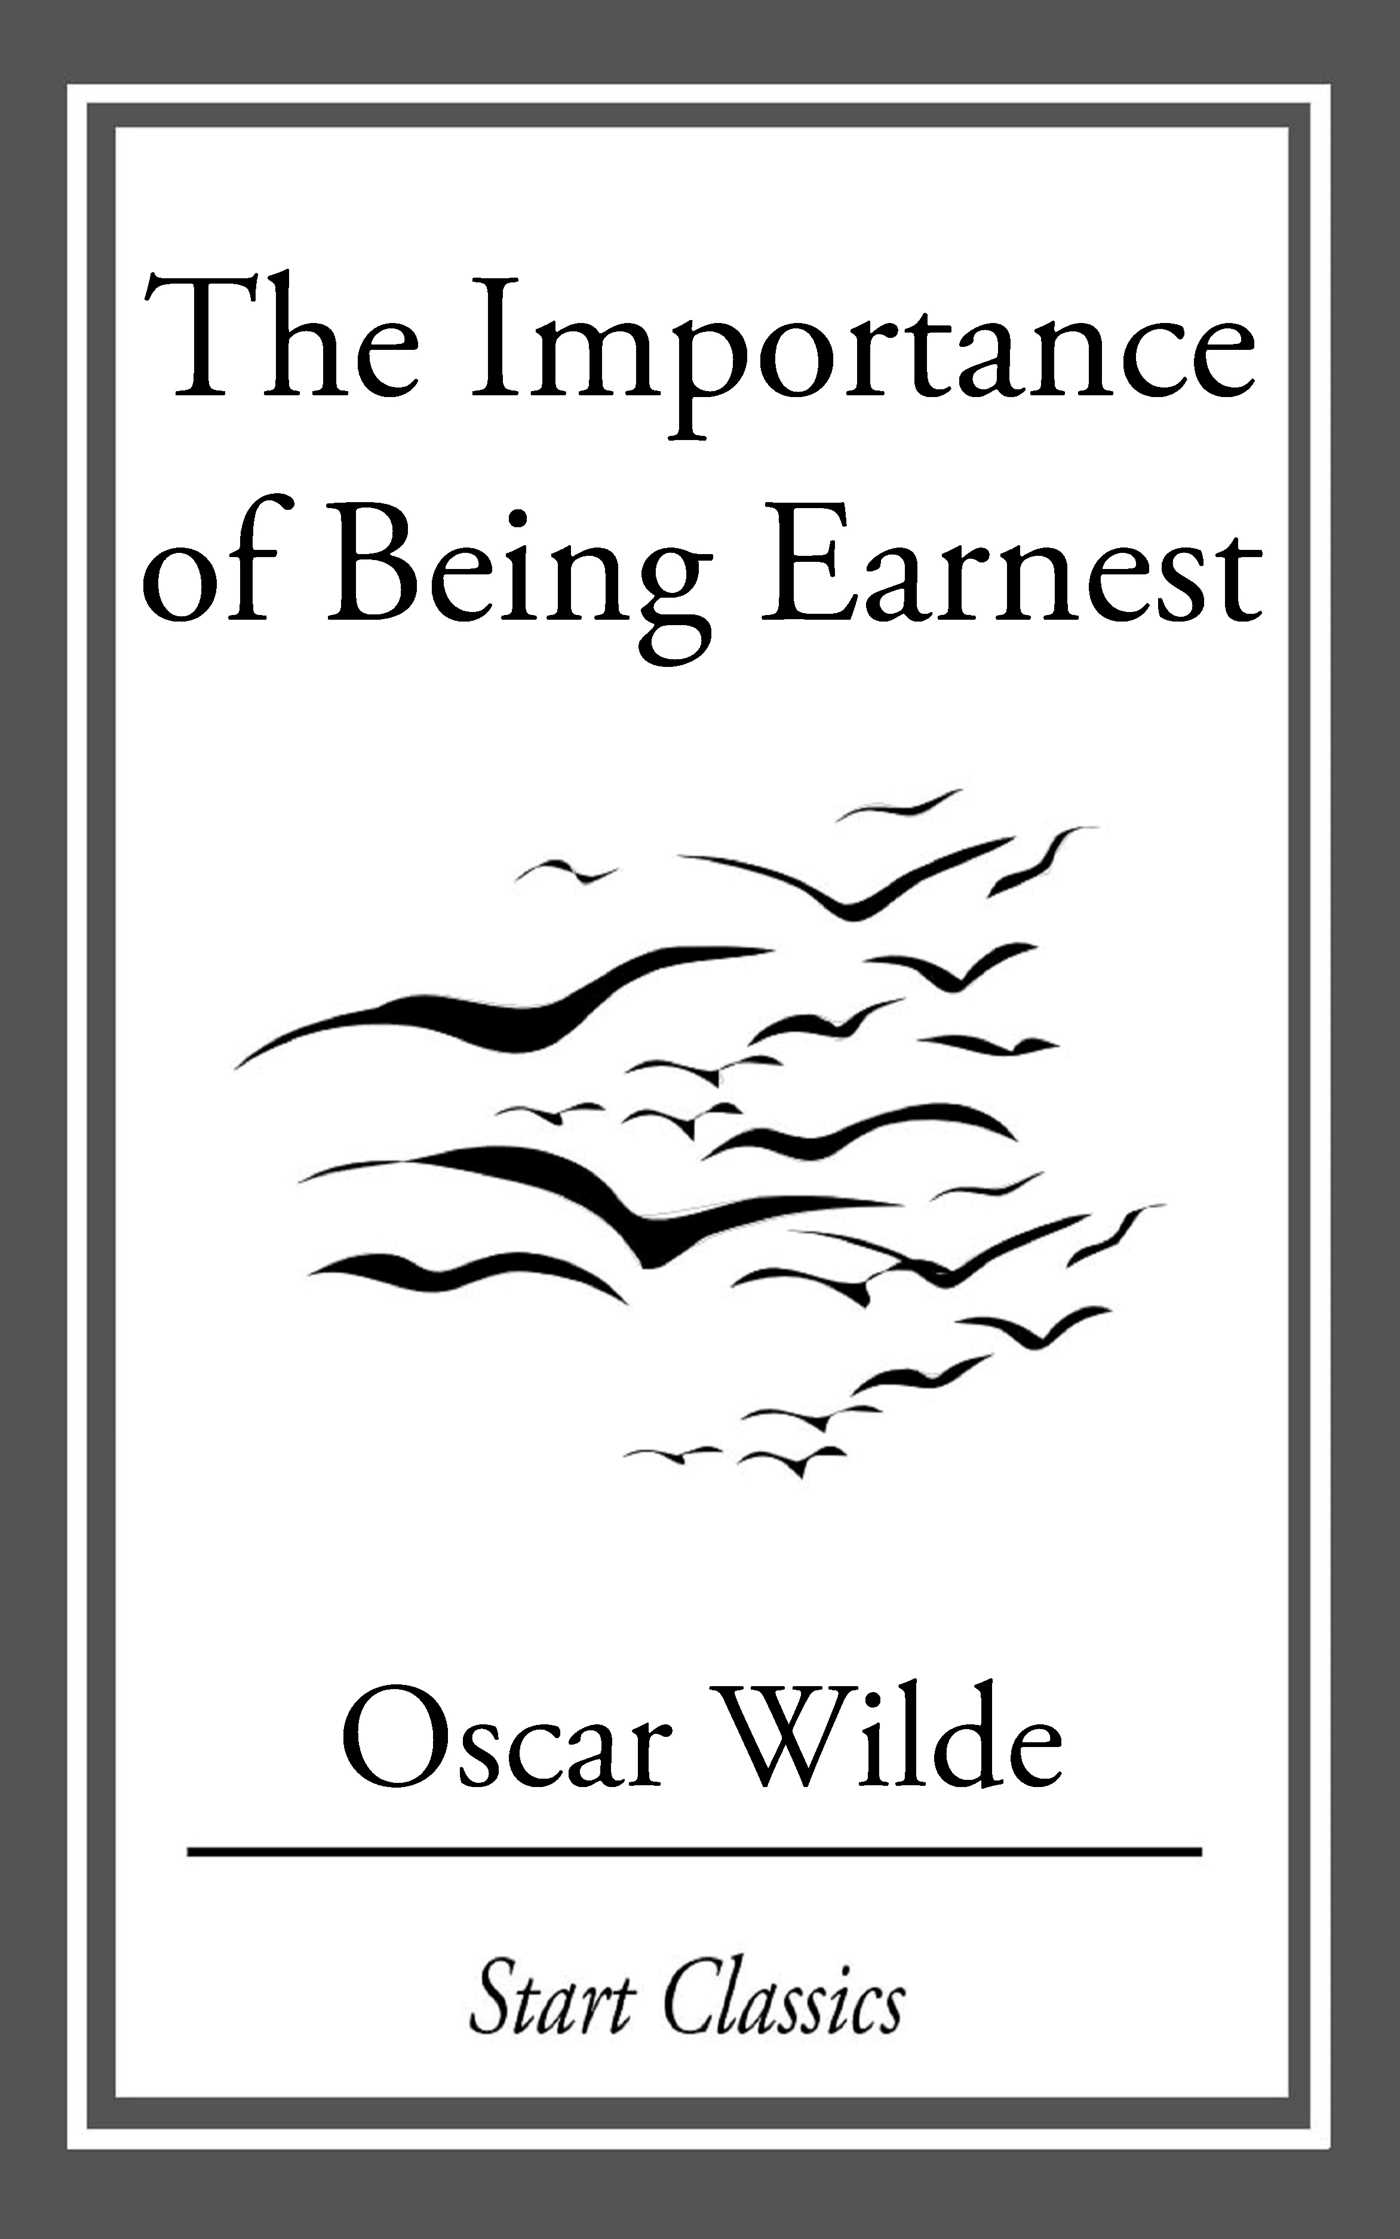 the importance of being earnest ebook by oscar wilde official the importance of being earnest 9781627938730 hr